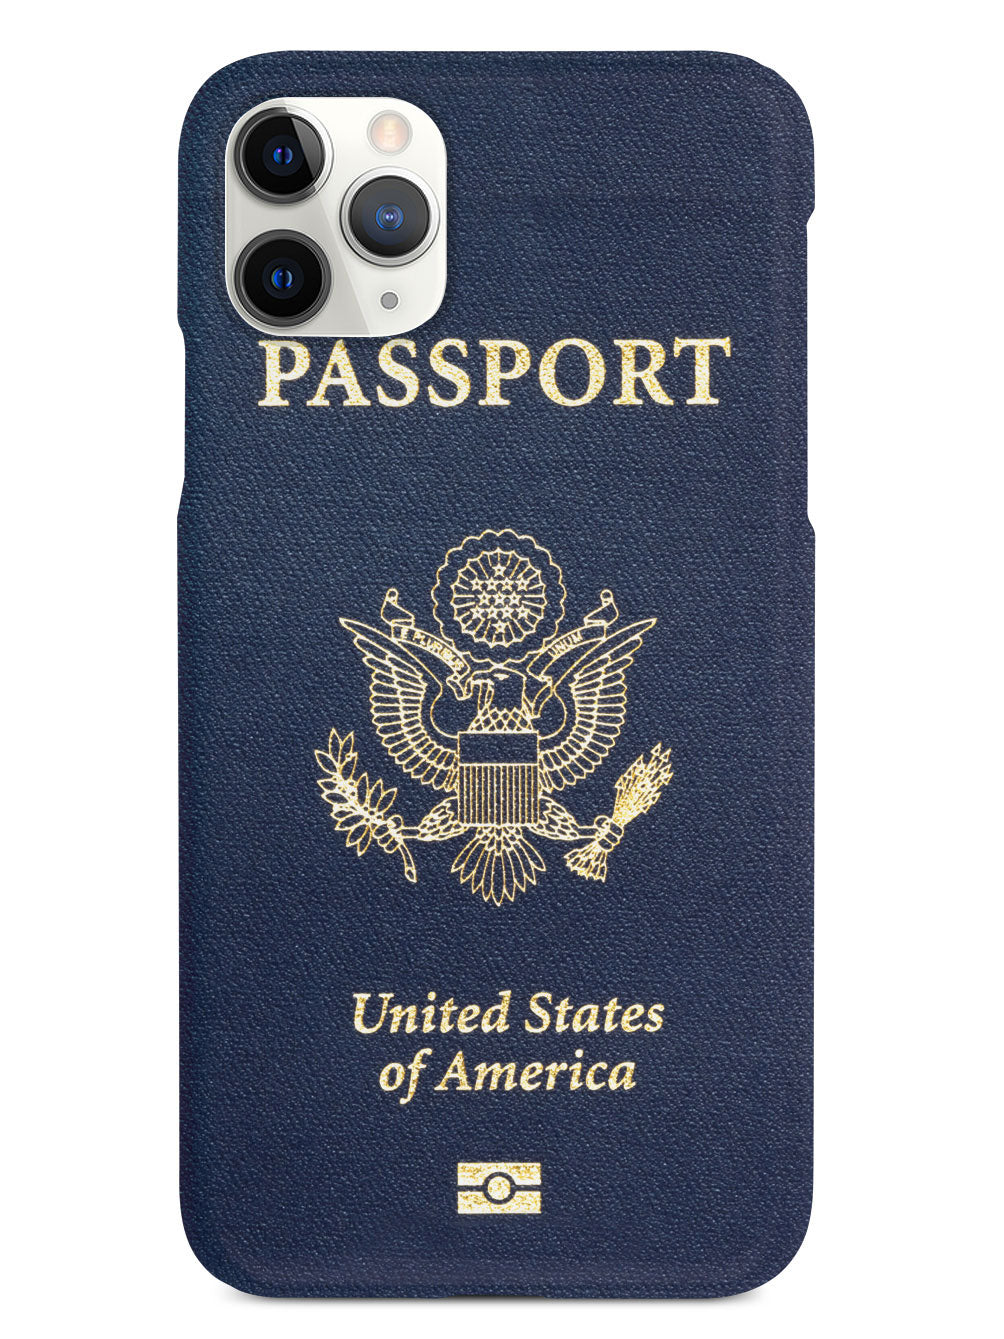 United States Passport Case